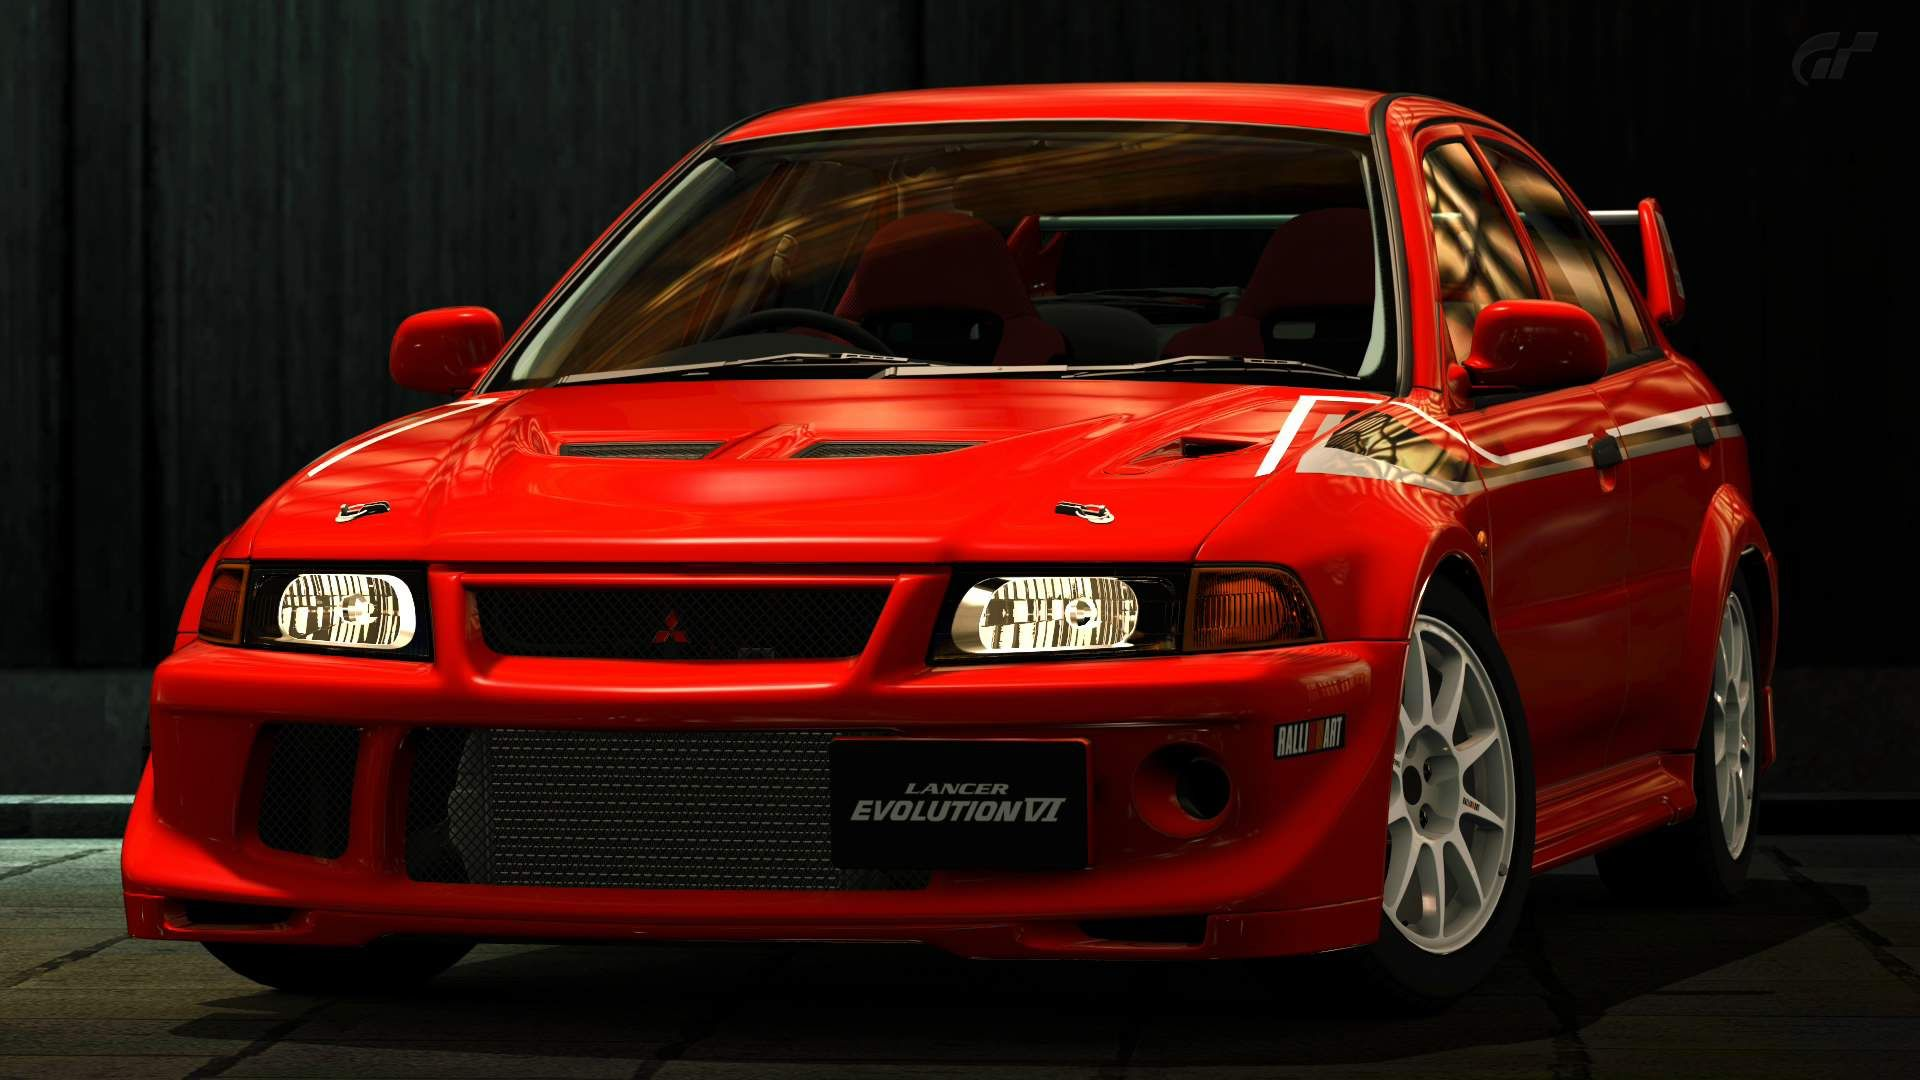 Mitsubishi Lancer Evolution Vi Tommi Makinen Edition Japanese